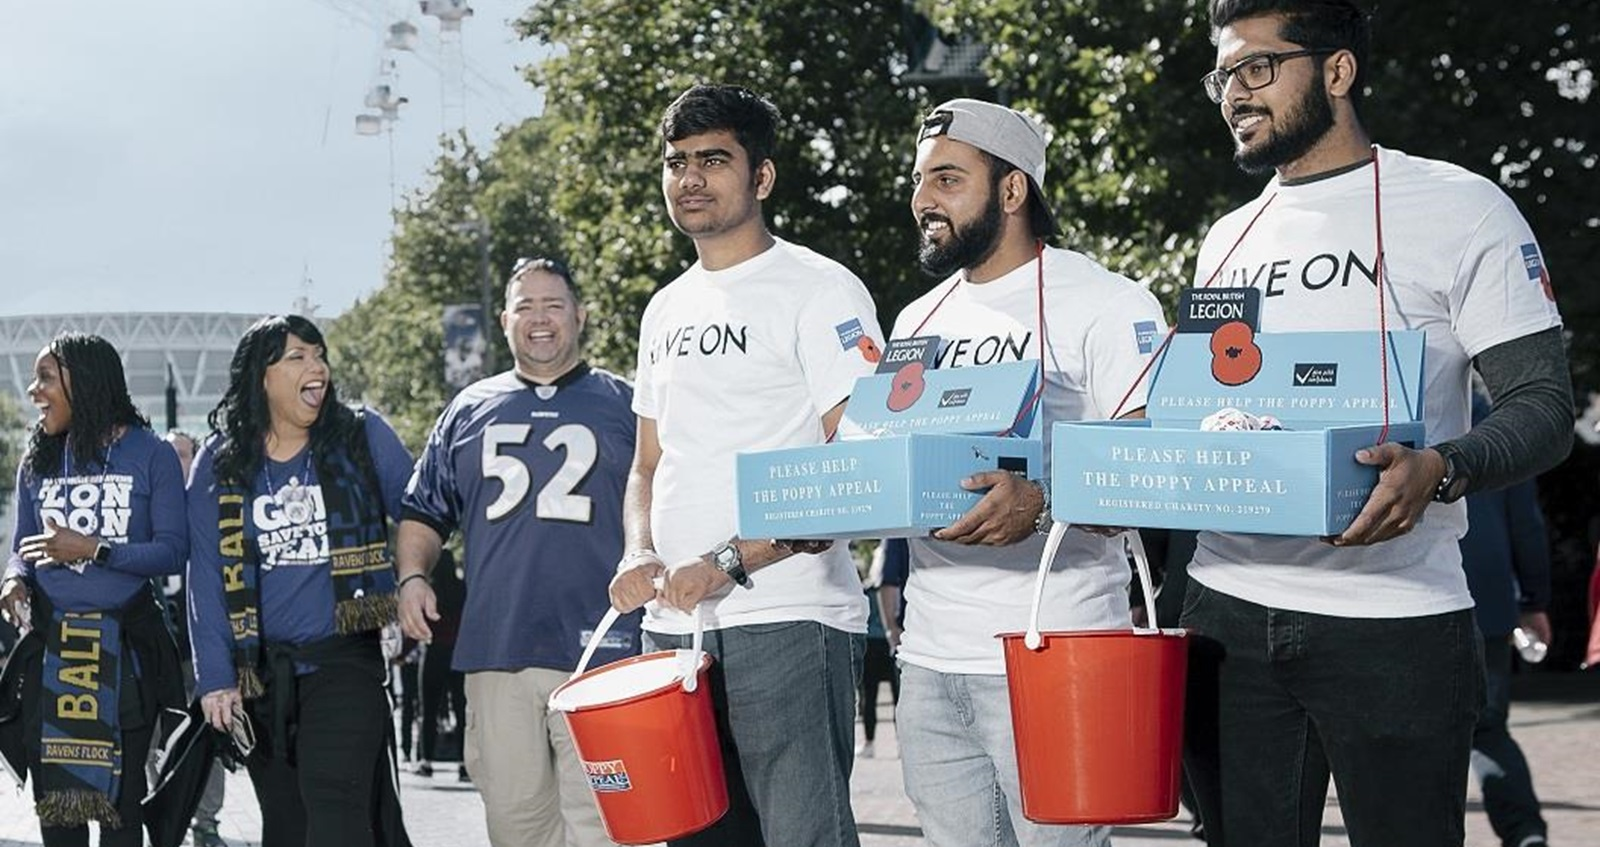 Volunteers from Ahmadiyya Muslim Youth Association distributing poppies during Poppy Appeal